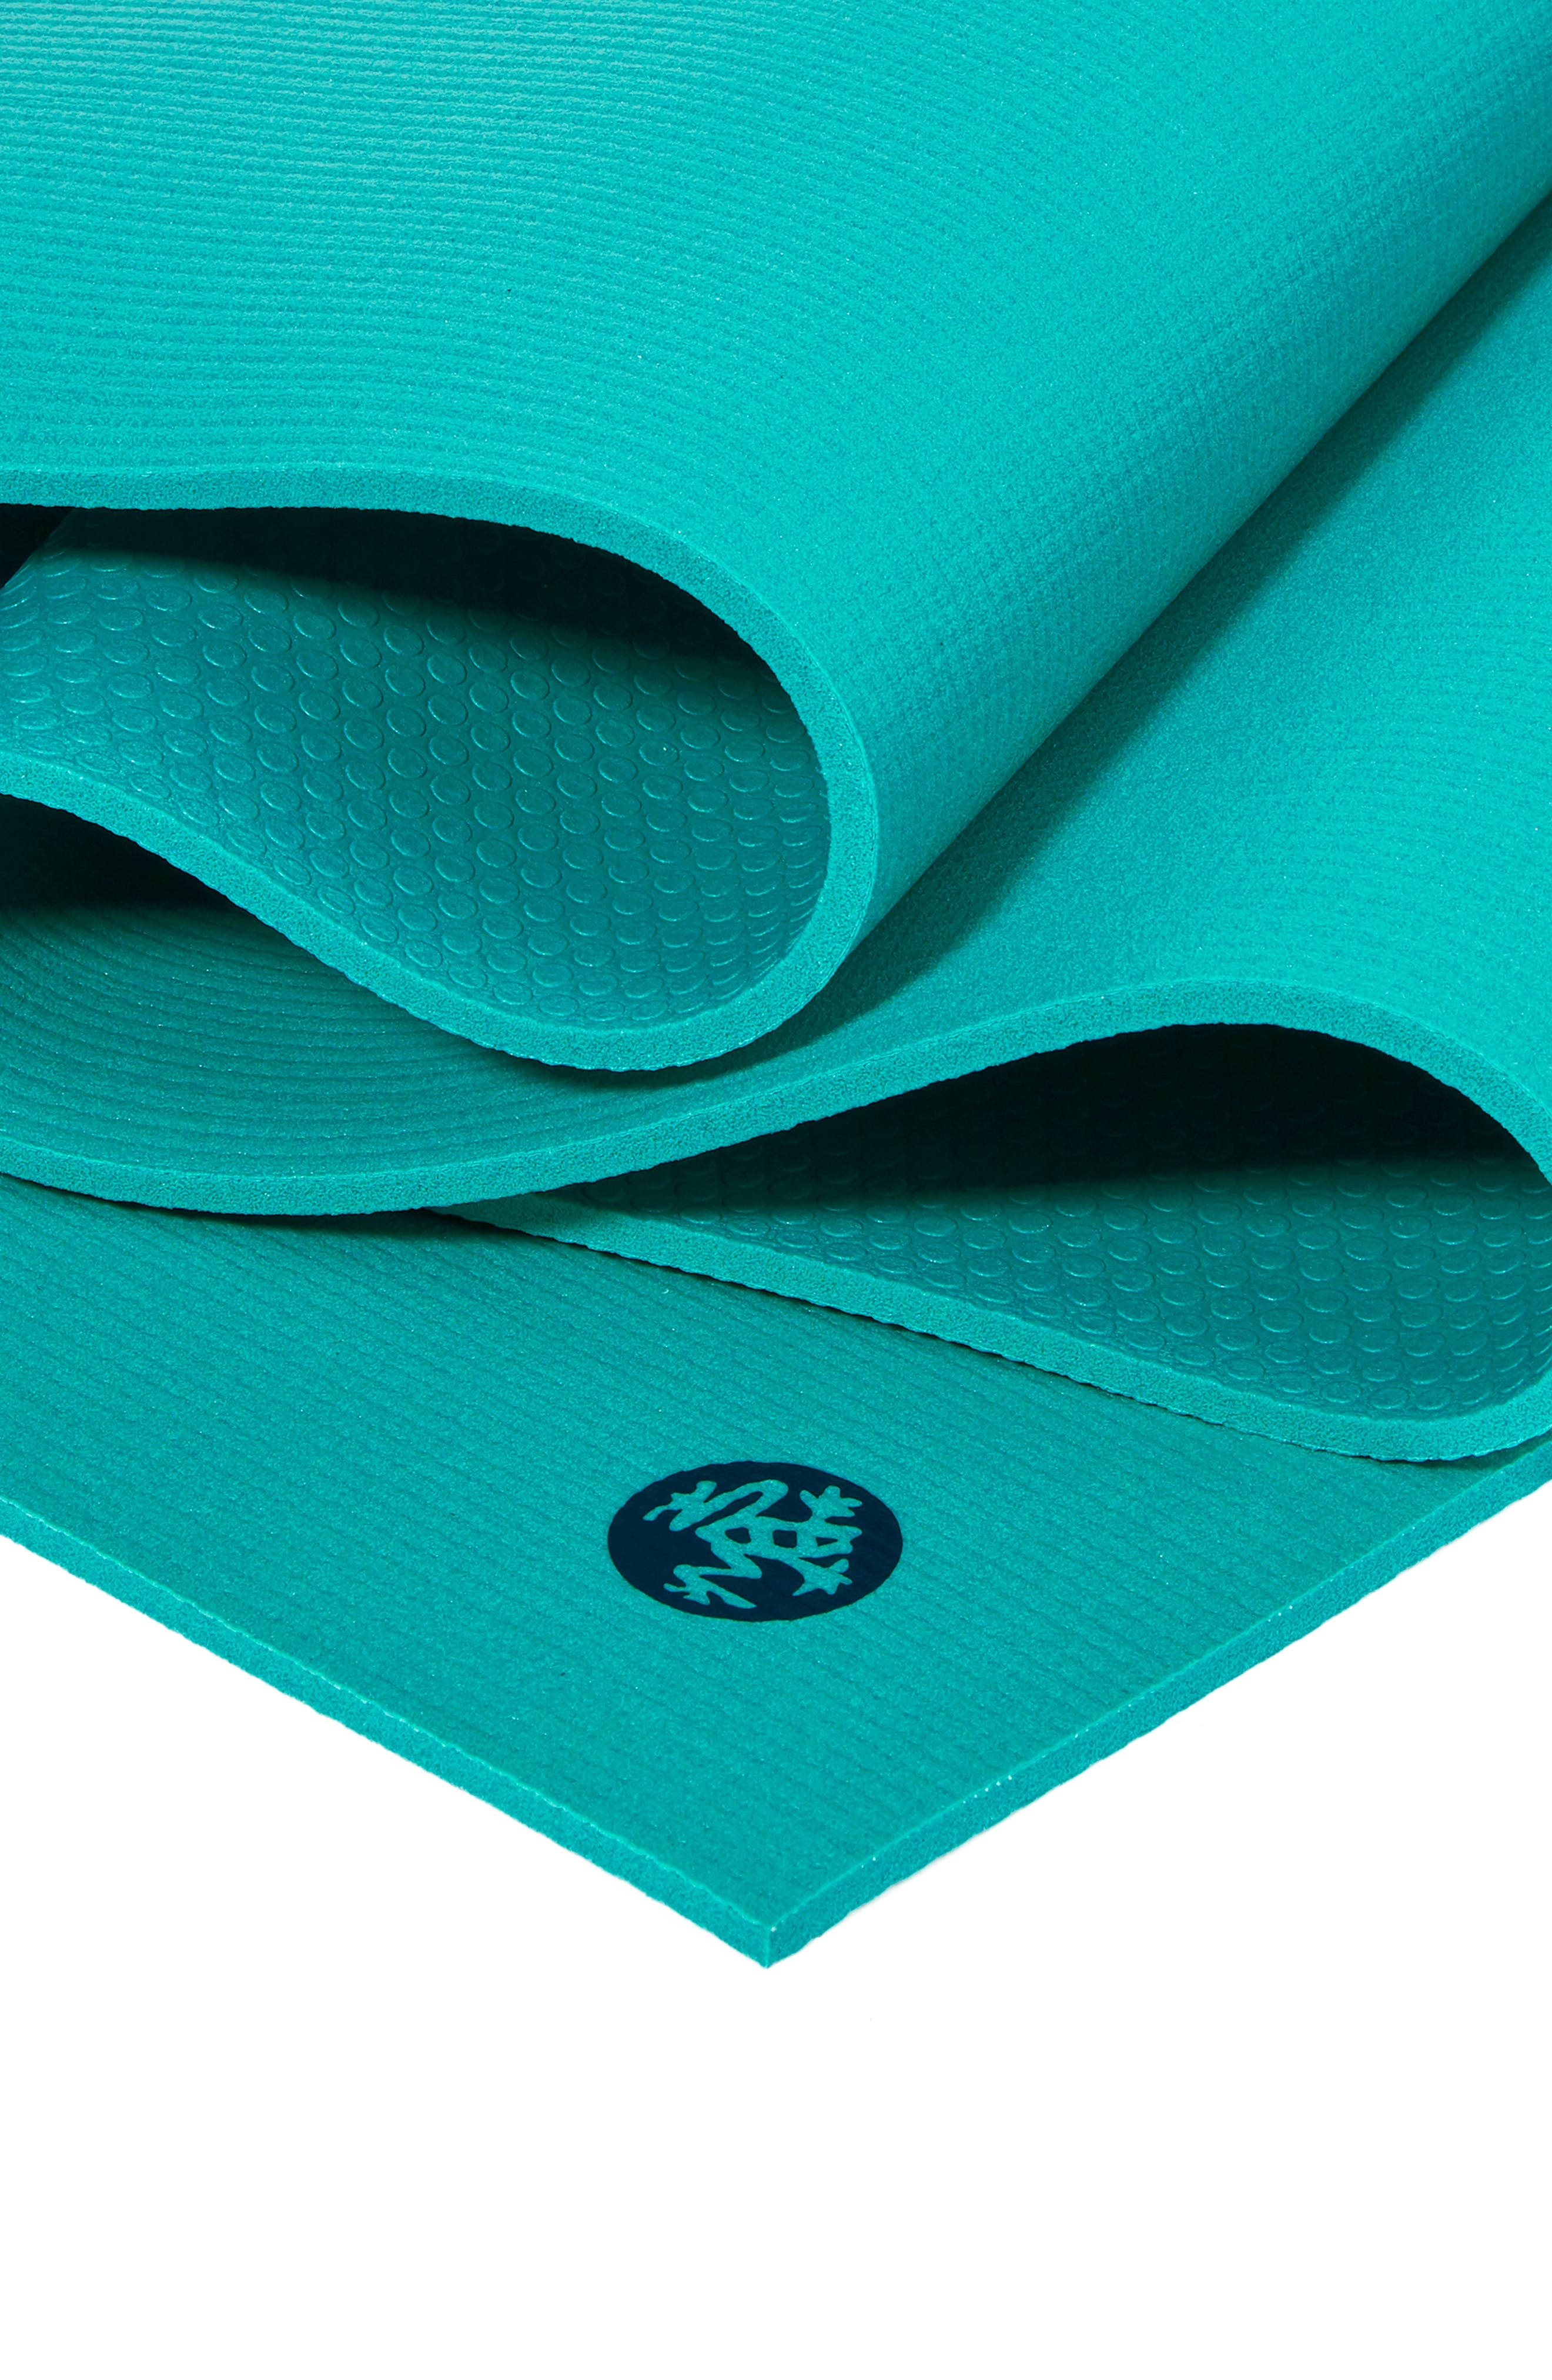 PRO71 Yoga Mat,                             Alternate thumbnail 2, color,                             310